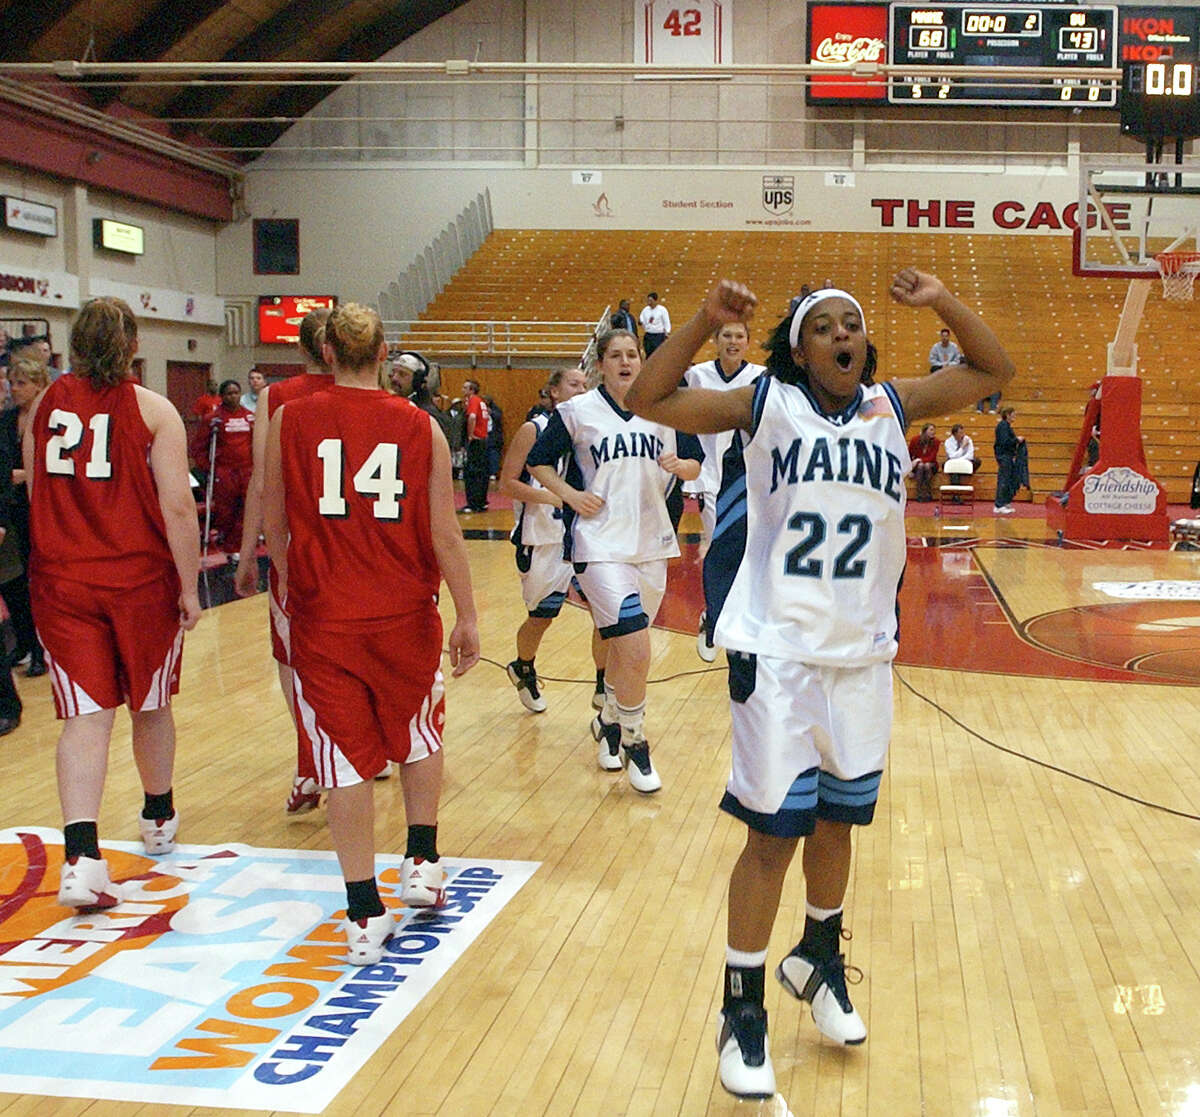 Maine's Kim Corbitt celebrates after Maine defeated Boston University 68-43 to win the women's America East Conference Tournament championship in 2004. Corbitt said the experience helped her prepare for where she is now.